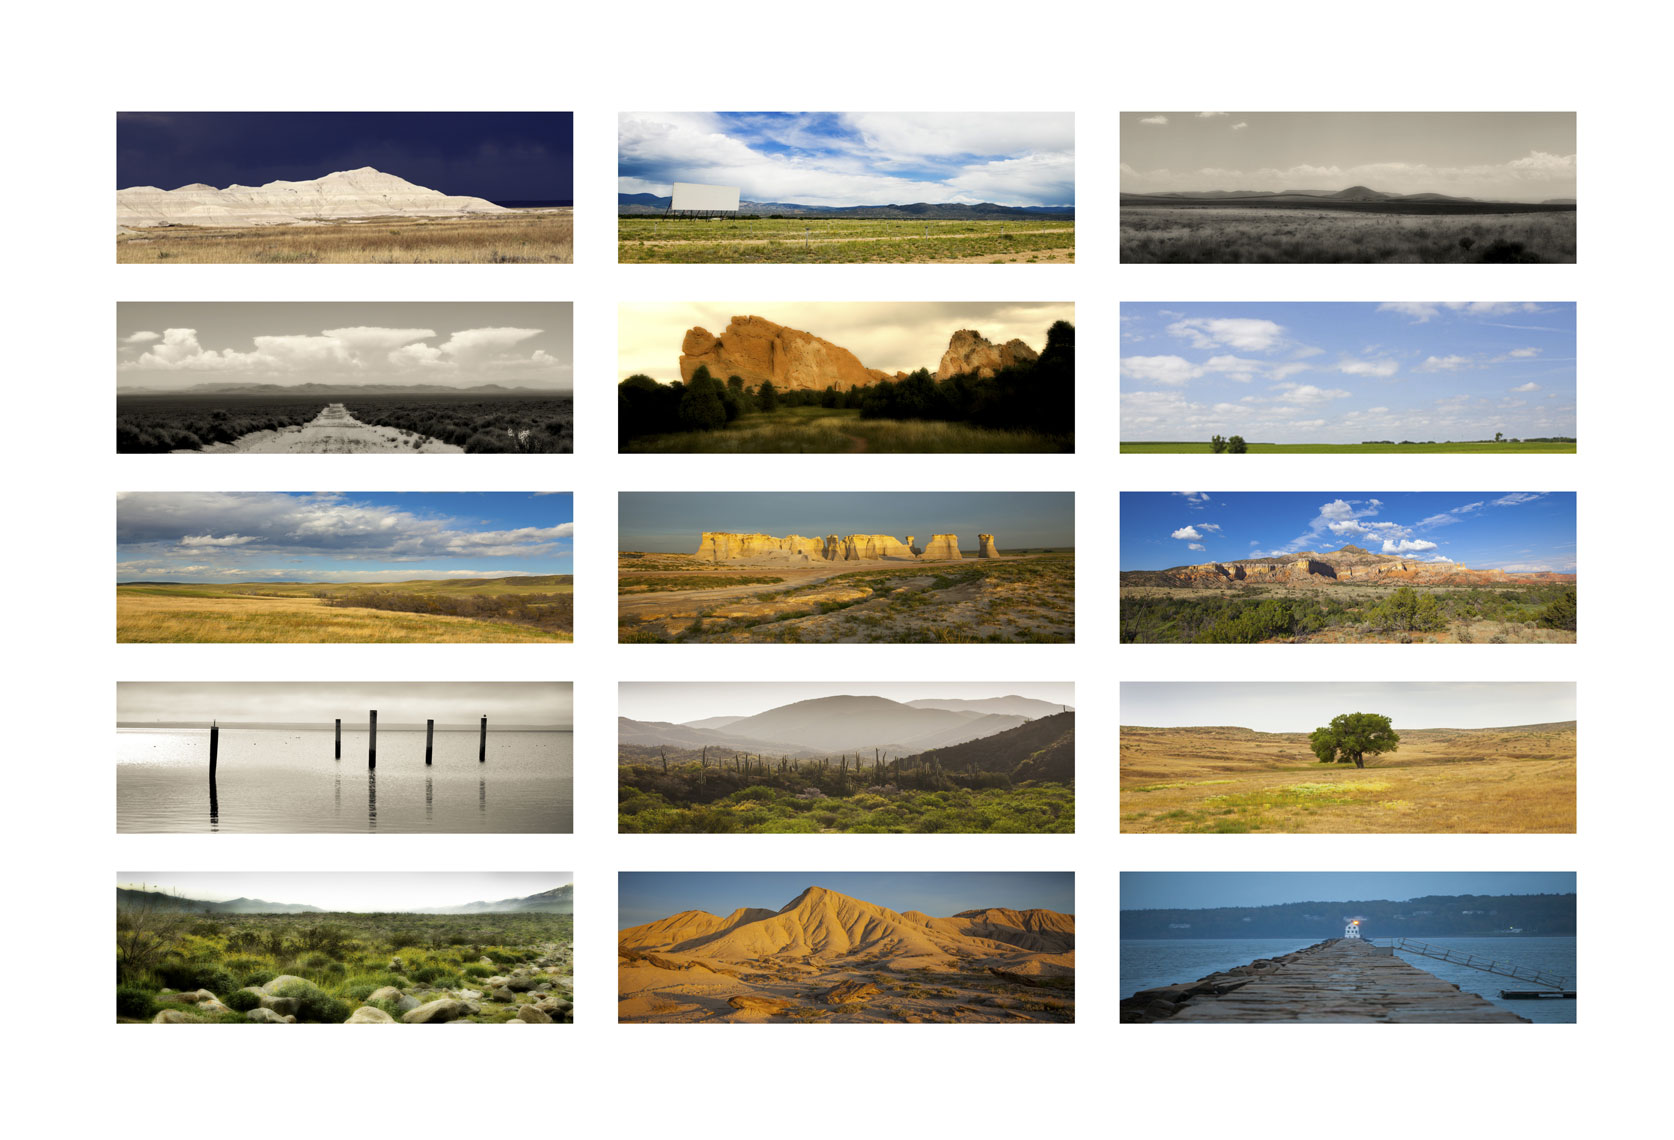 028_Landscapes_Typology